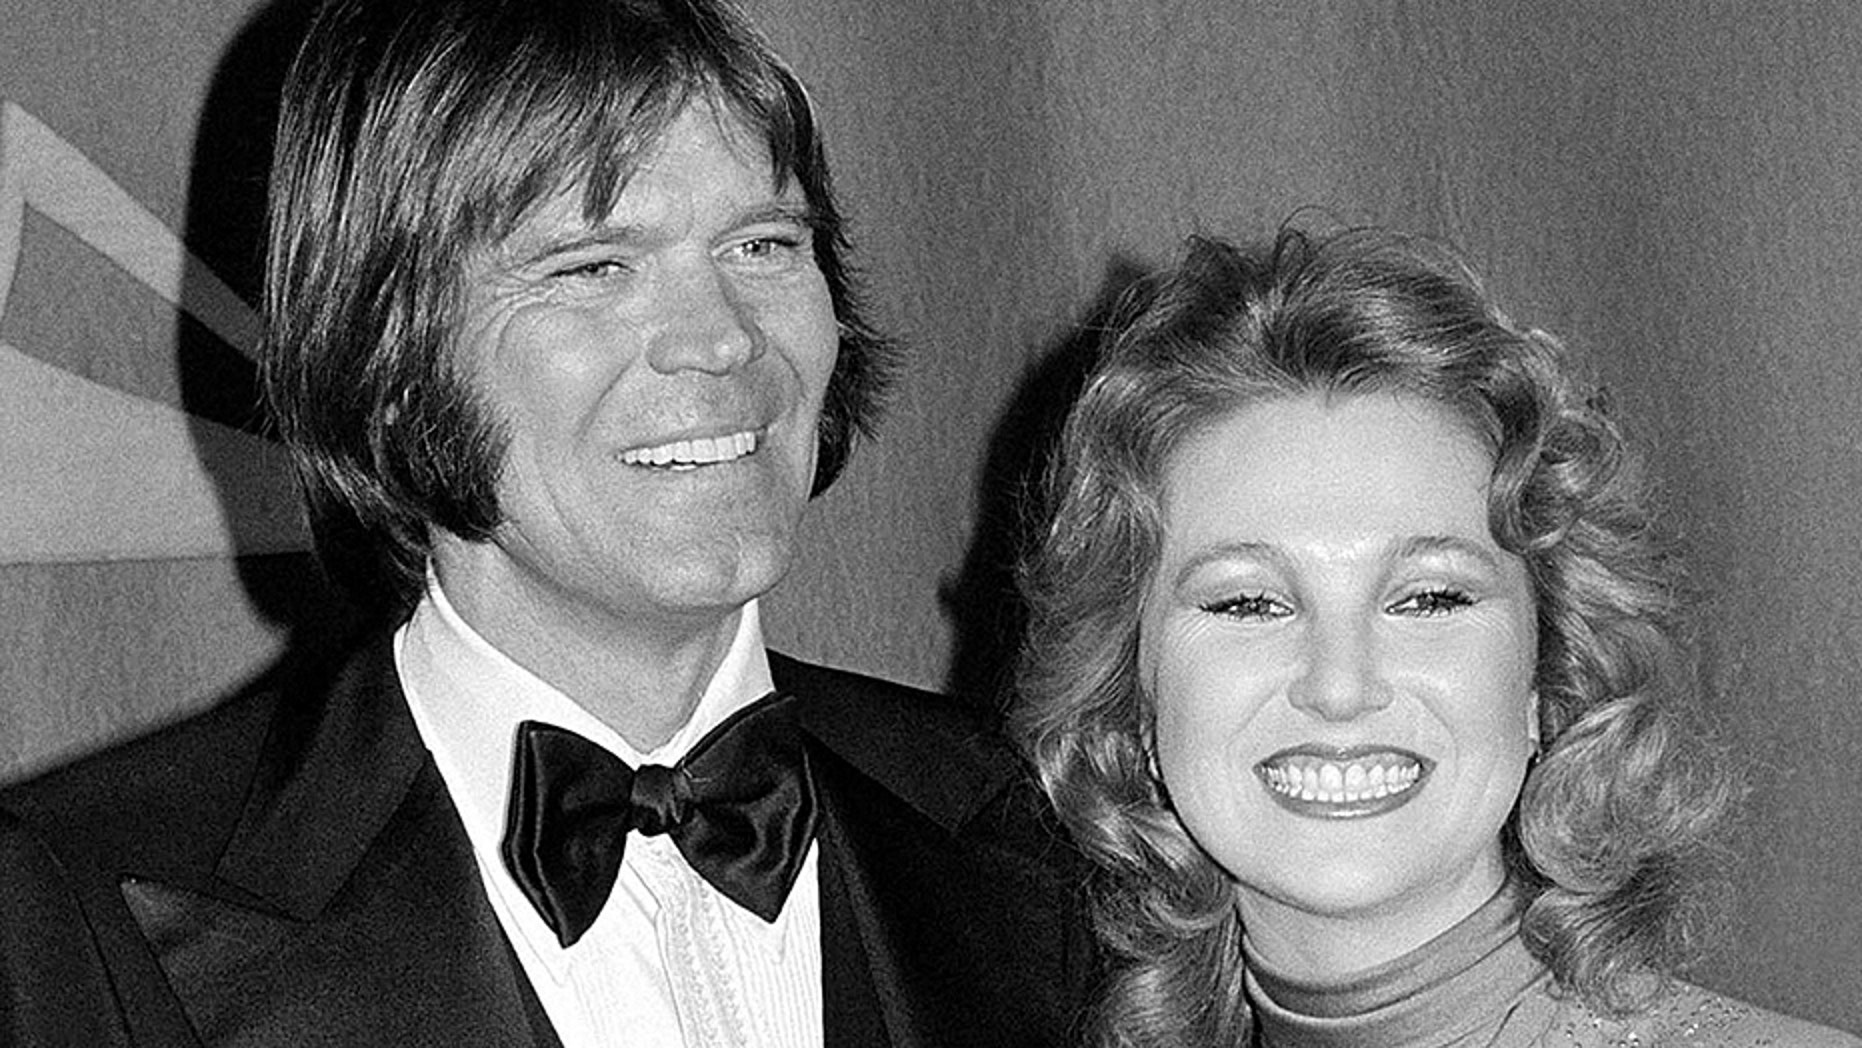 """Tanya Tucker recorded """"Forever Loving You"""" in honor of her former beau, fellow country music star Glen Campbell, who passed away in 2017."""